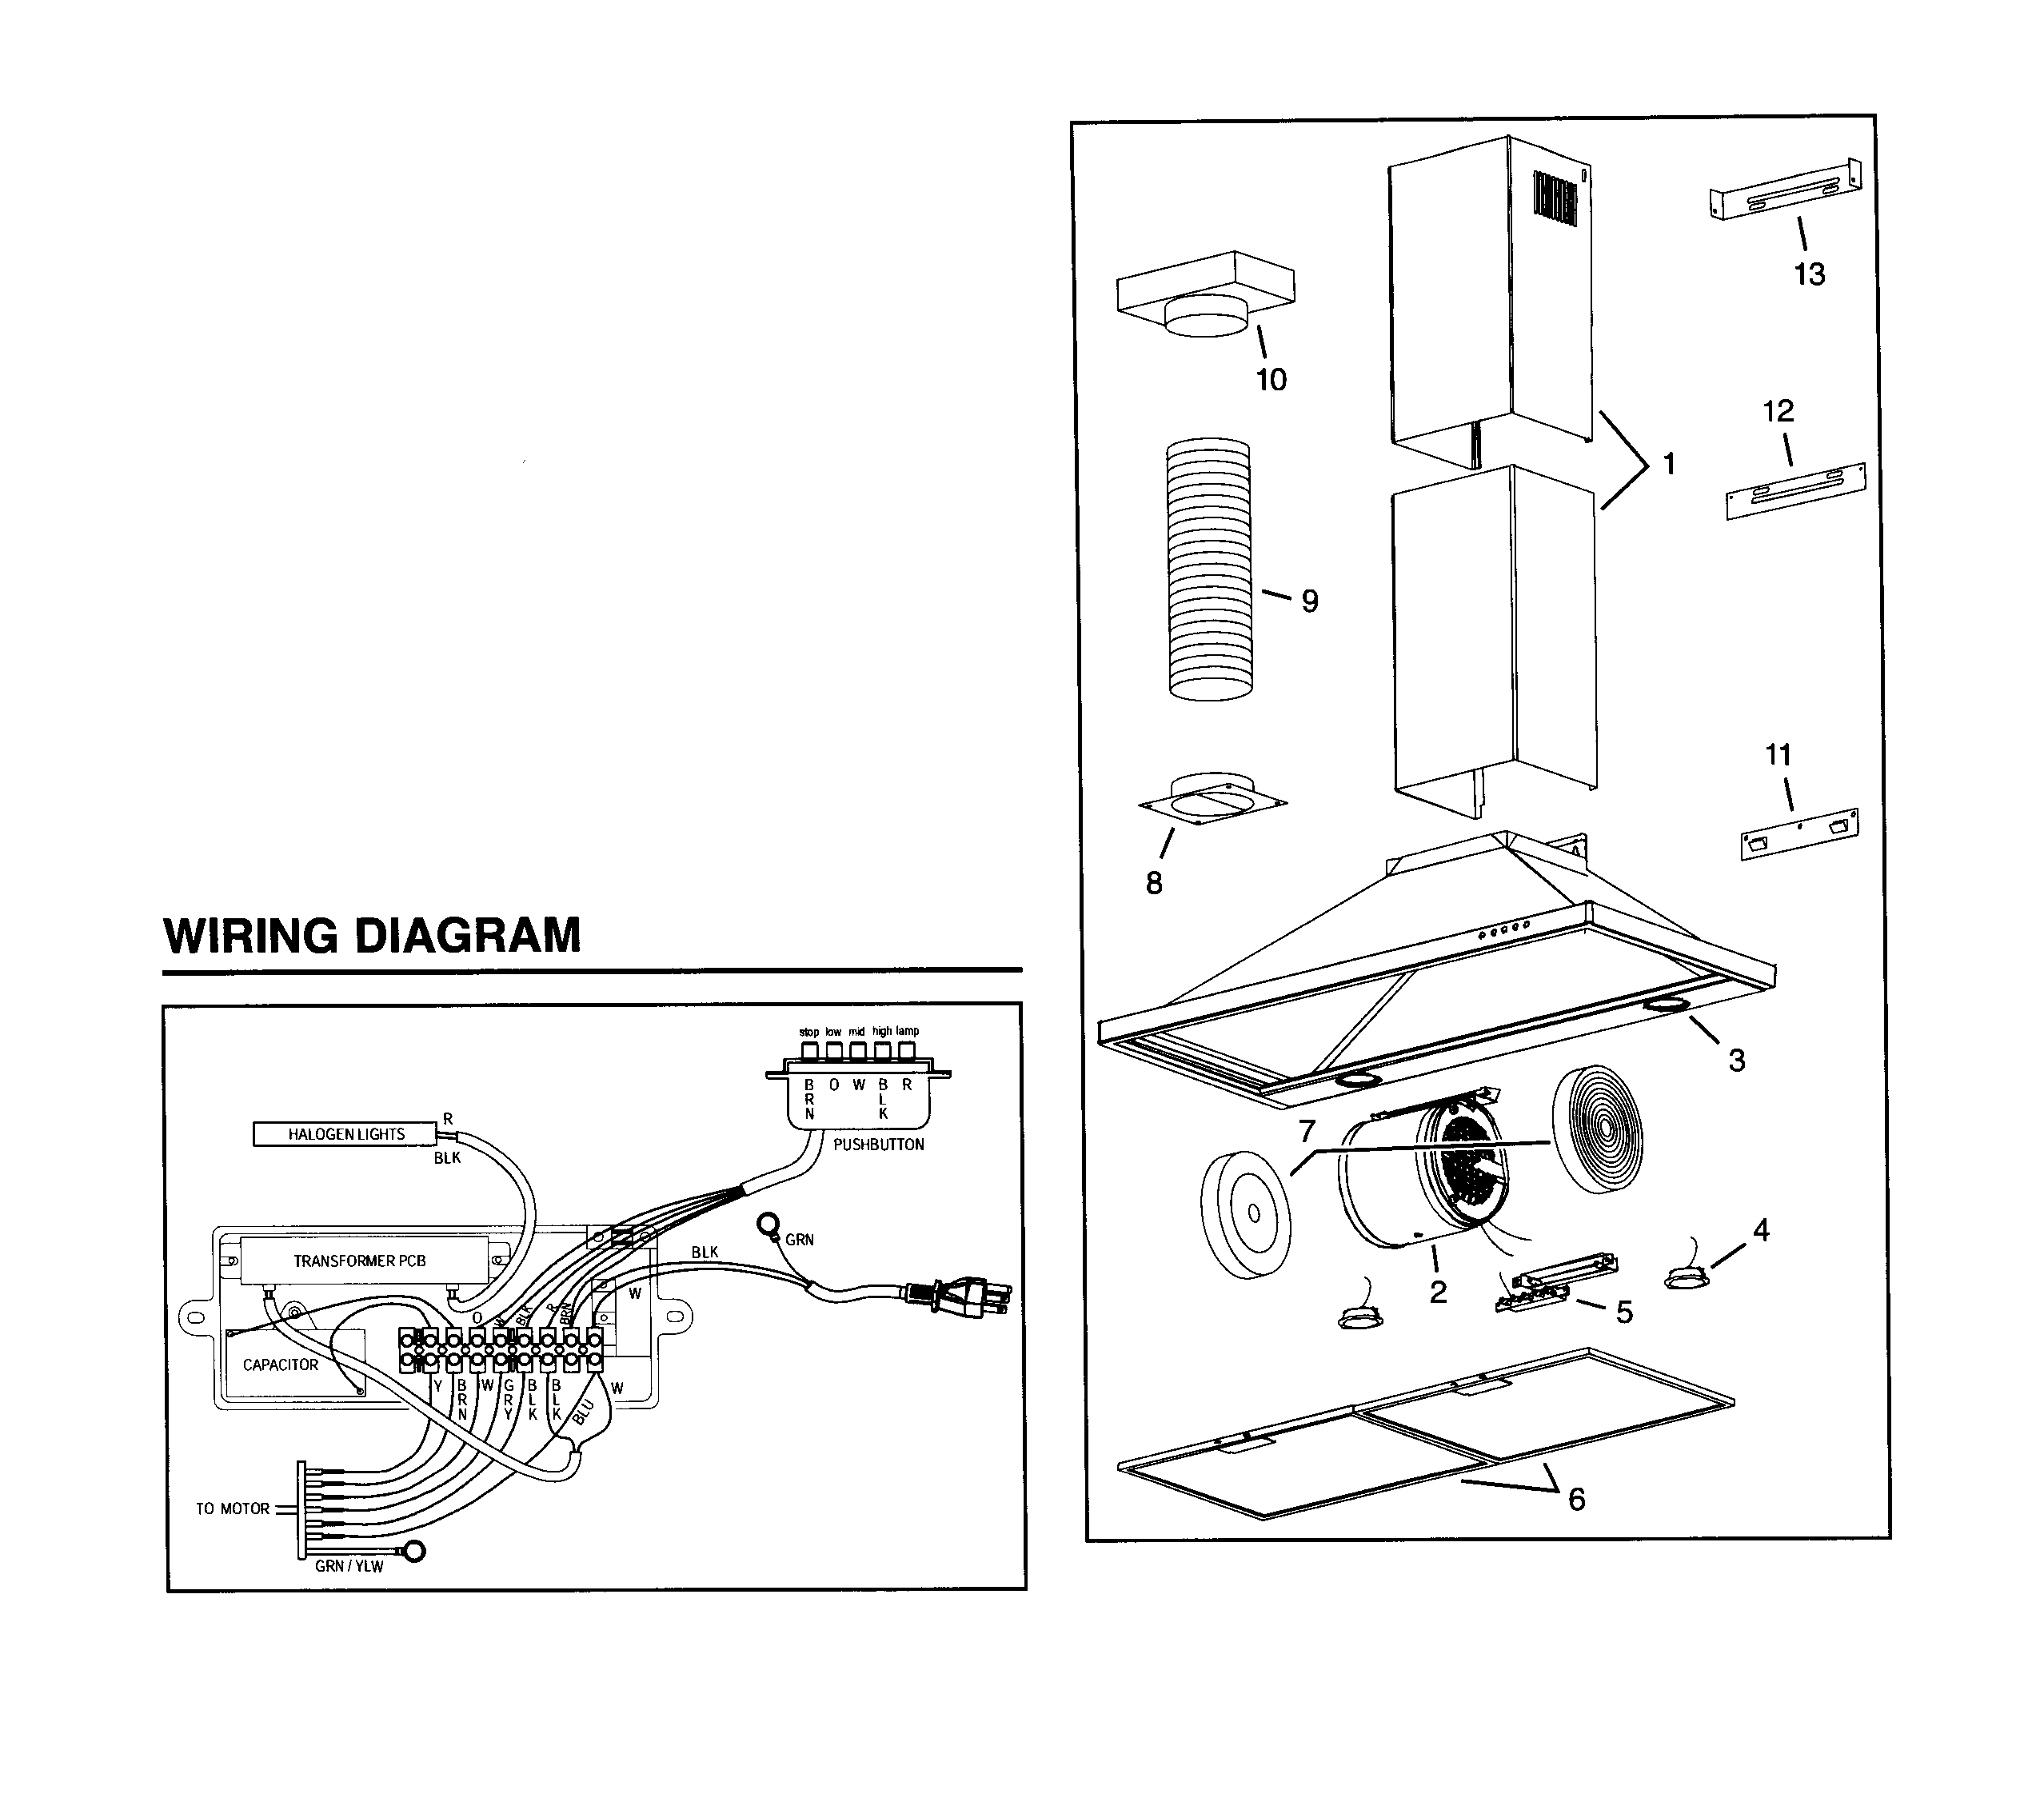 50045782 00001 broan range hood wiring diagram whirlpool gas range wiring wiring diagram for broan range hood at gsmx.co